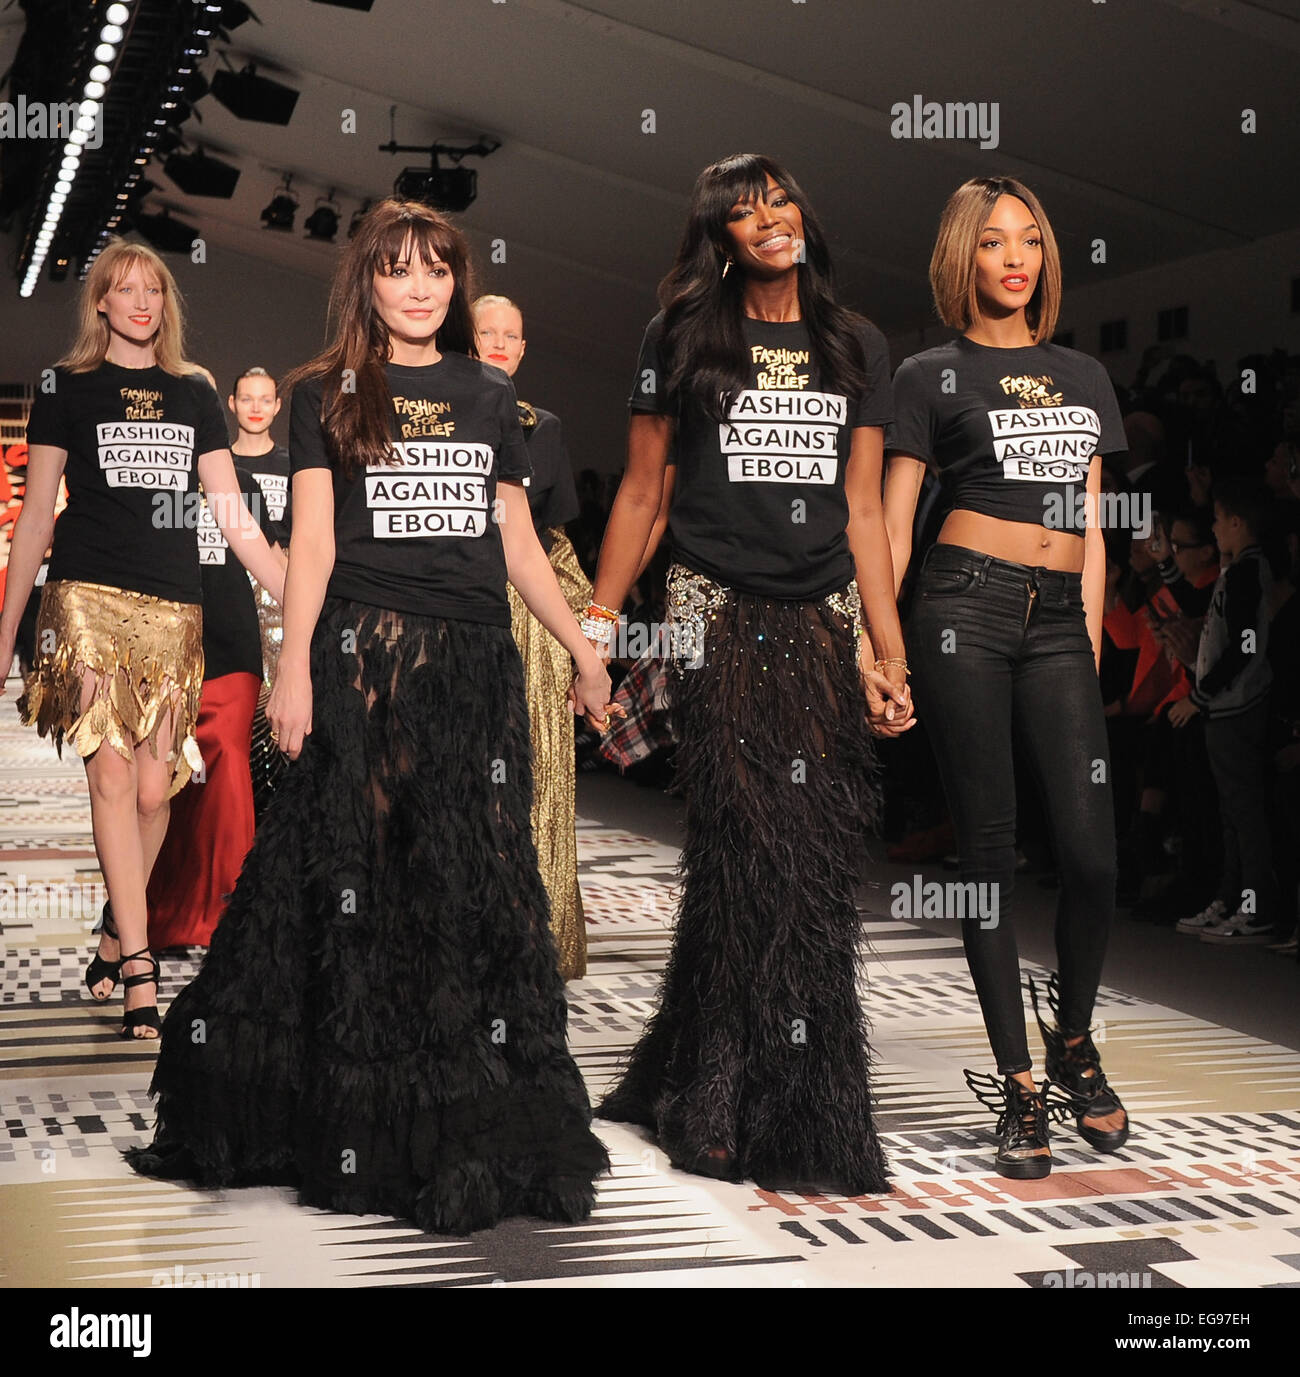 Annabelle Neilson Naomi Campbell Andjourdan Dunn Walks The Runway At Naomi Campbells Fashion For Relief Catwalk Show And Fundraiser A Celebrity Catwalk